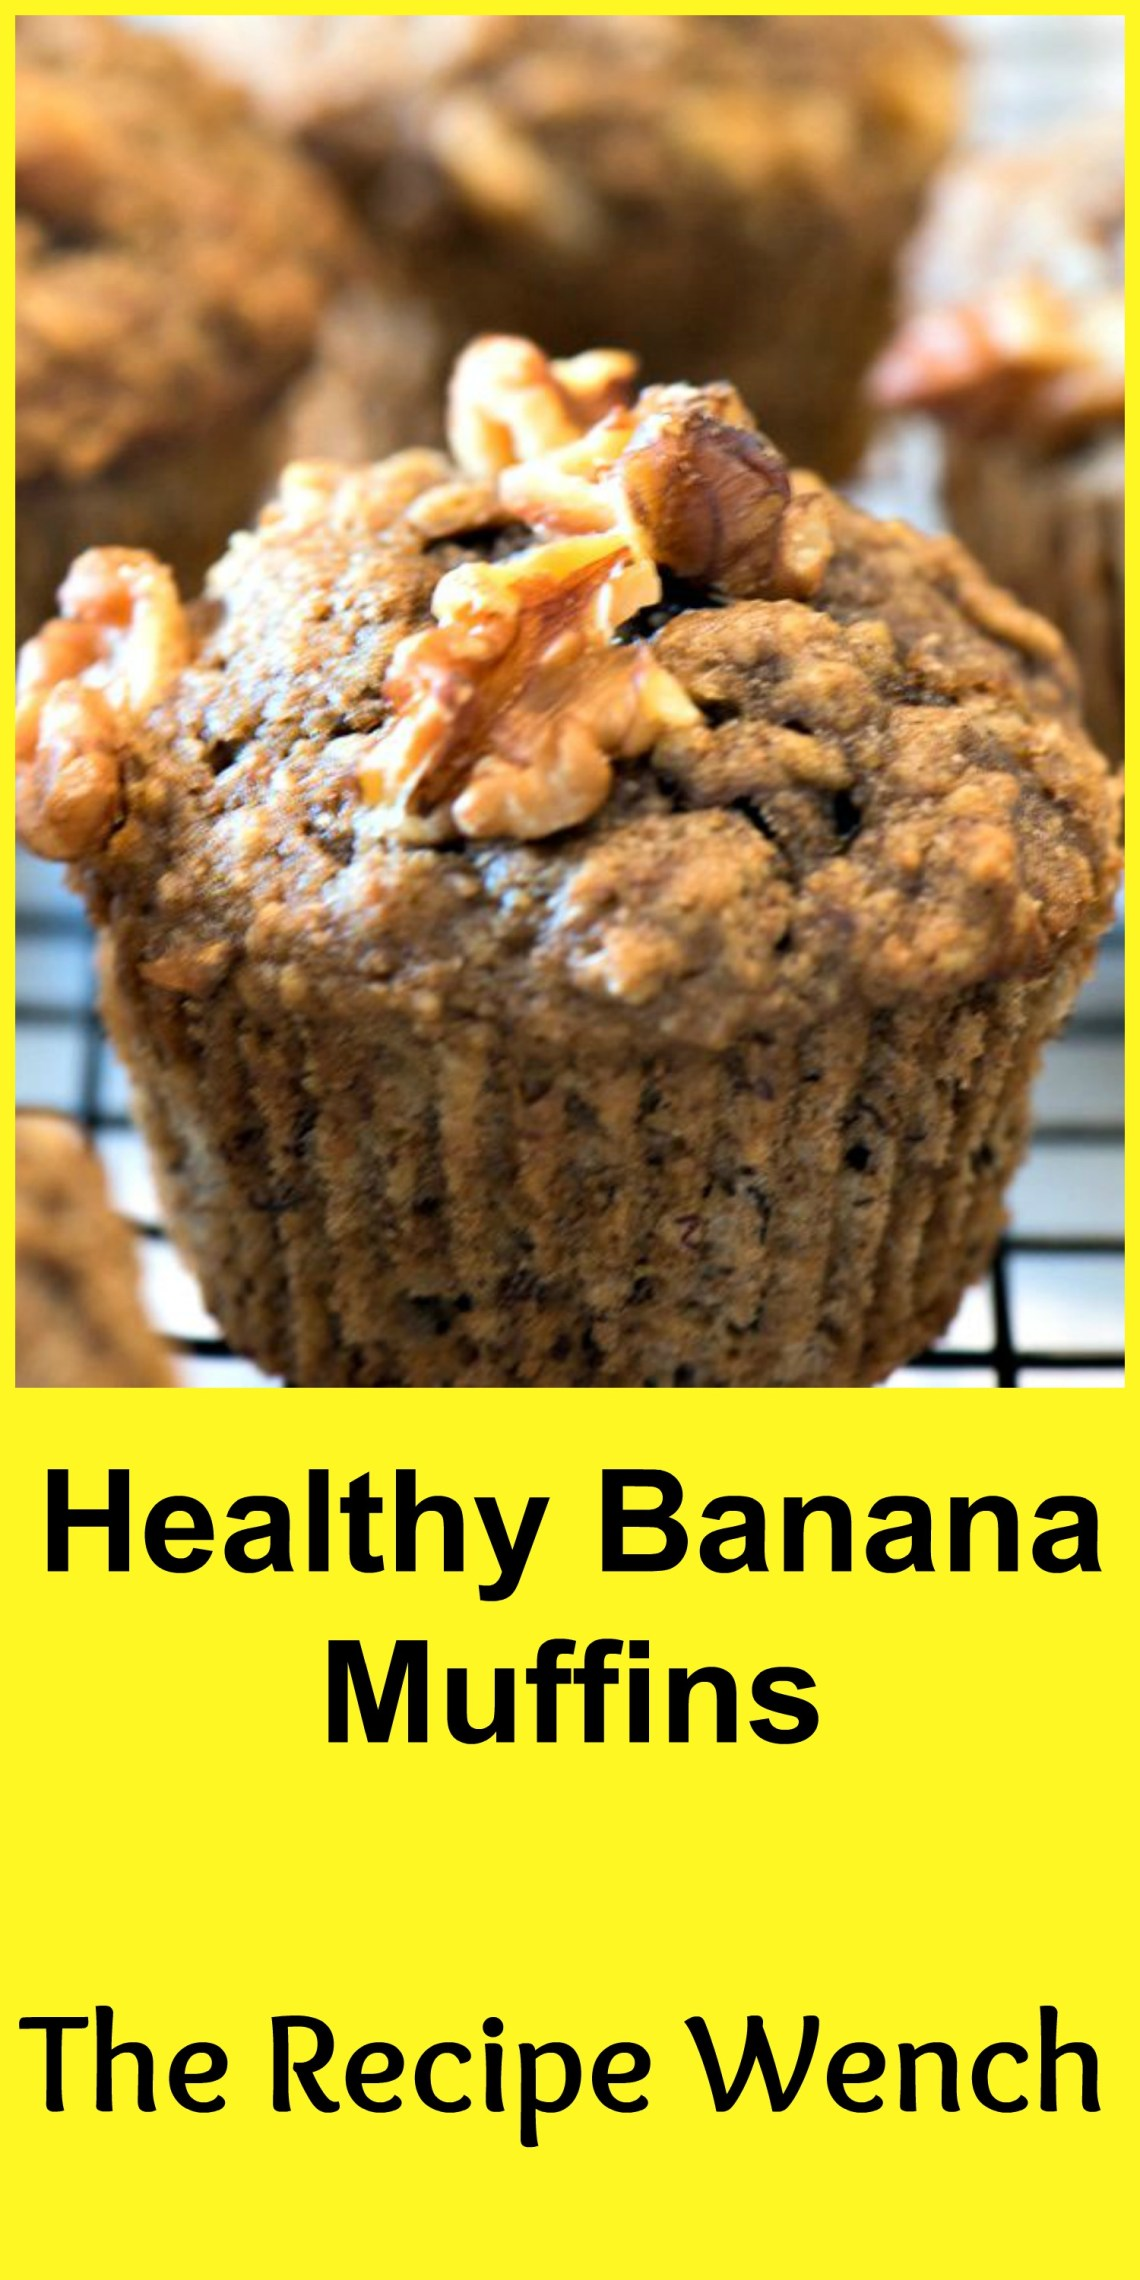 This easy recipe for healthy banana muffins uses whole wheat flour, dark brown sugar, sweet bananas and protein packed walnuts. Freeze an extra batch! | The Recipe Wench